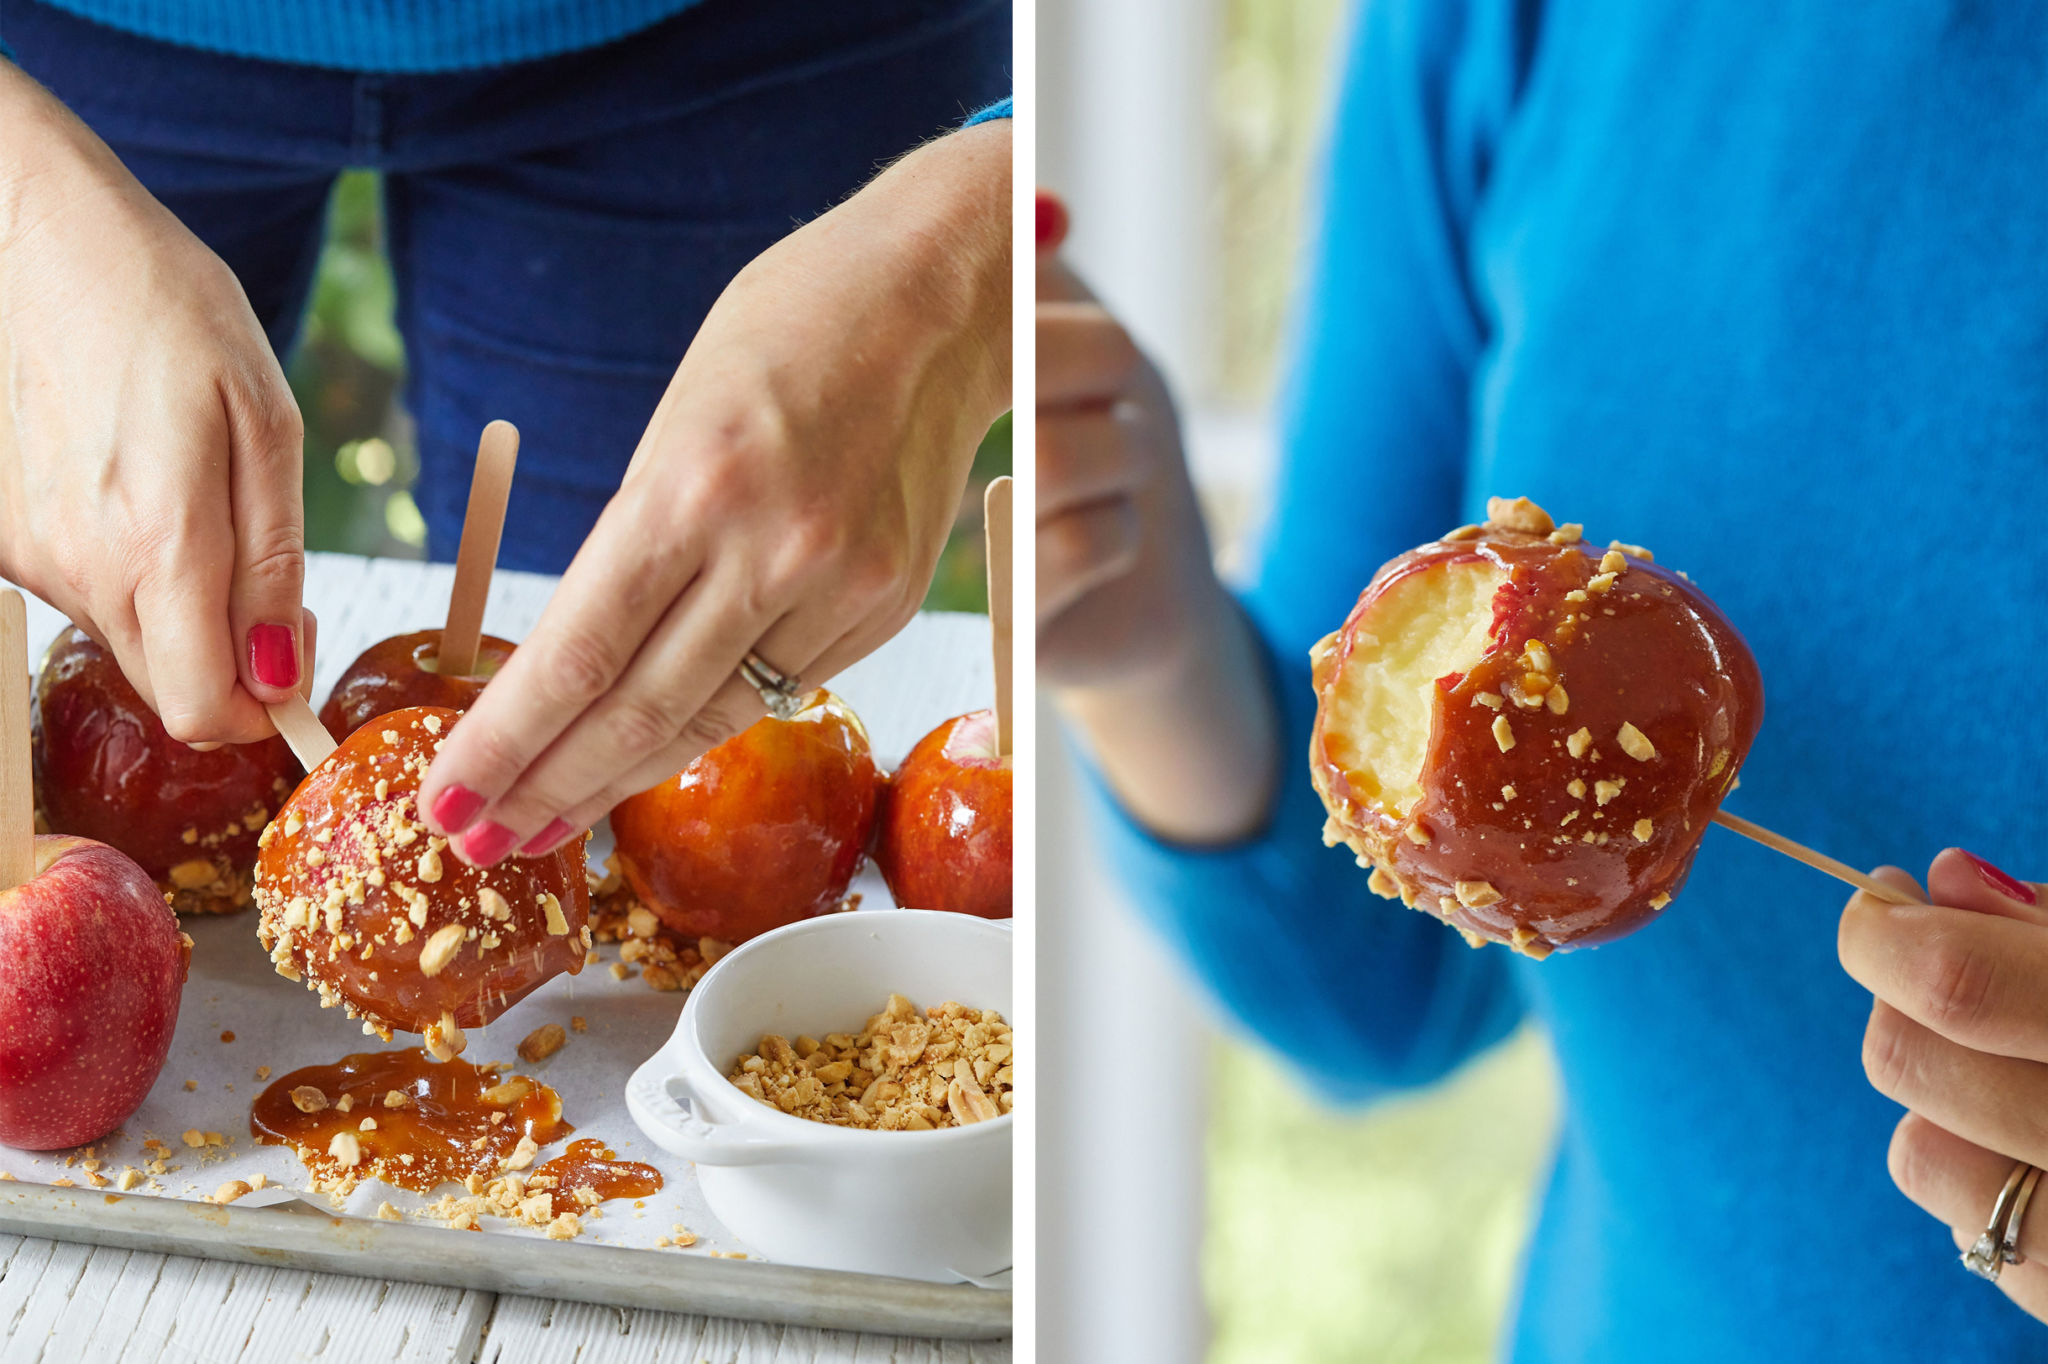 A side-by-side image of putting peanuts on a caramel apple and a caramel apple with a bite taken out of it.